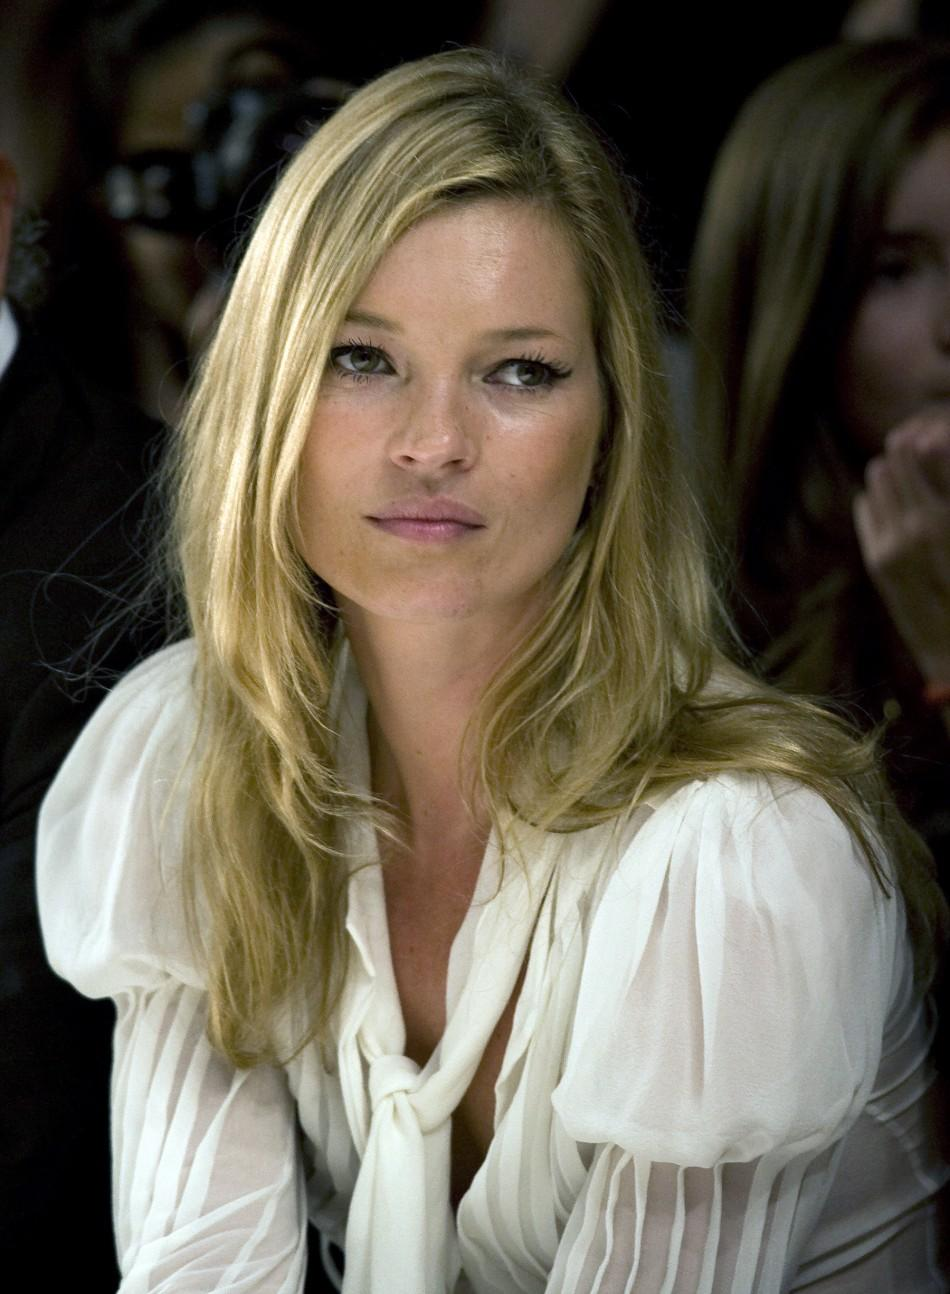 Kate Moss prepares for wedding on Friday